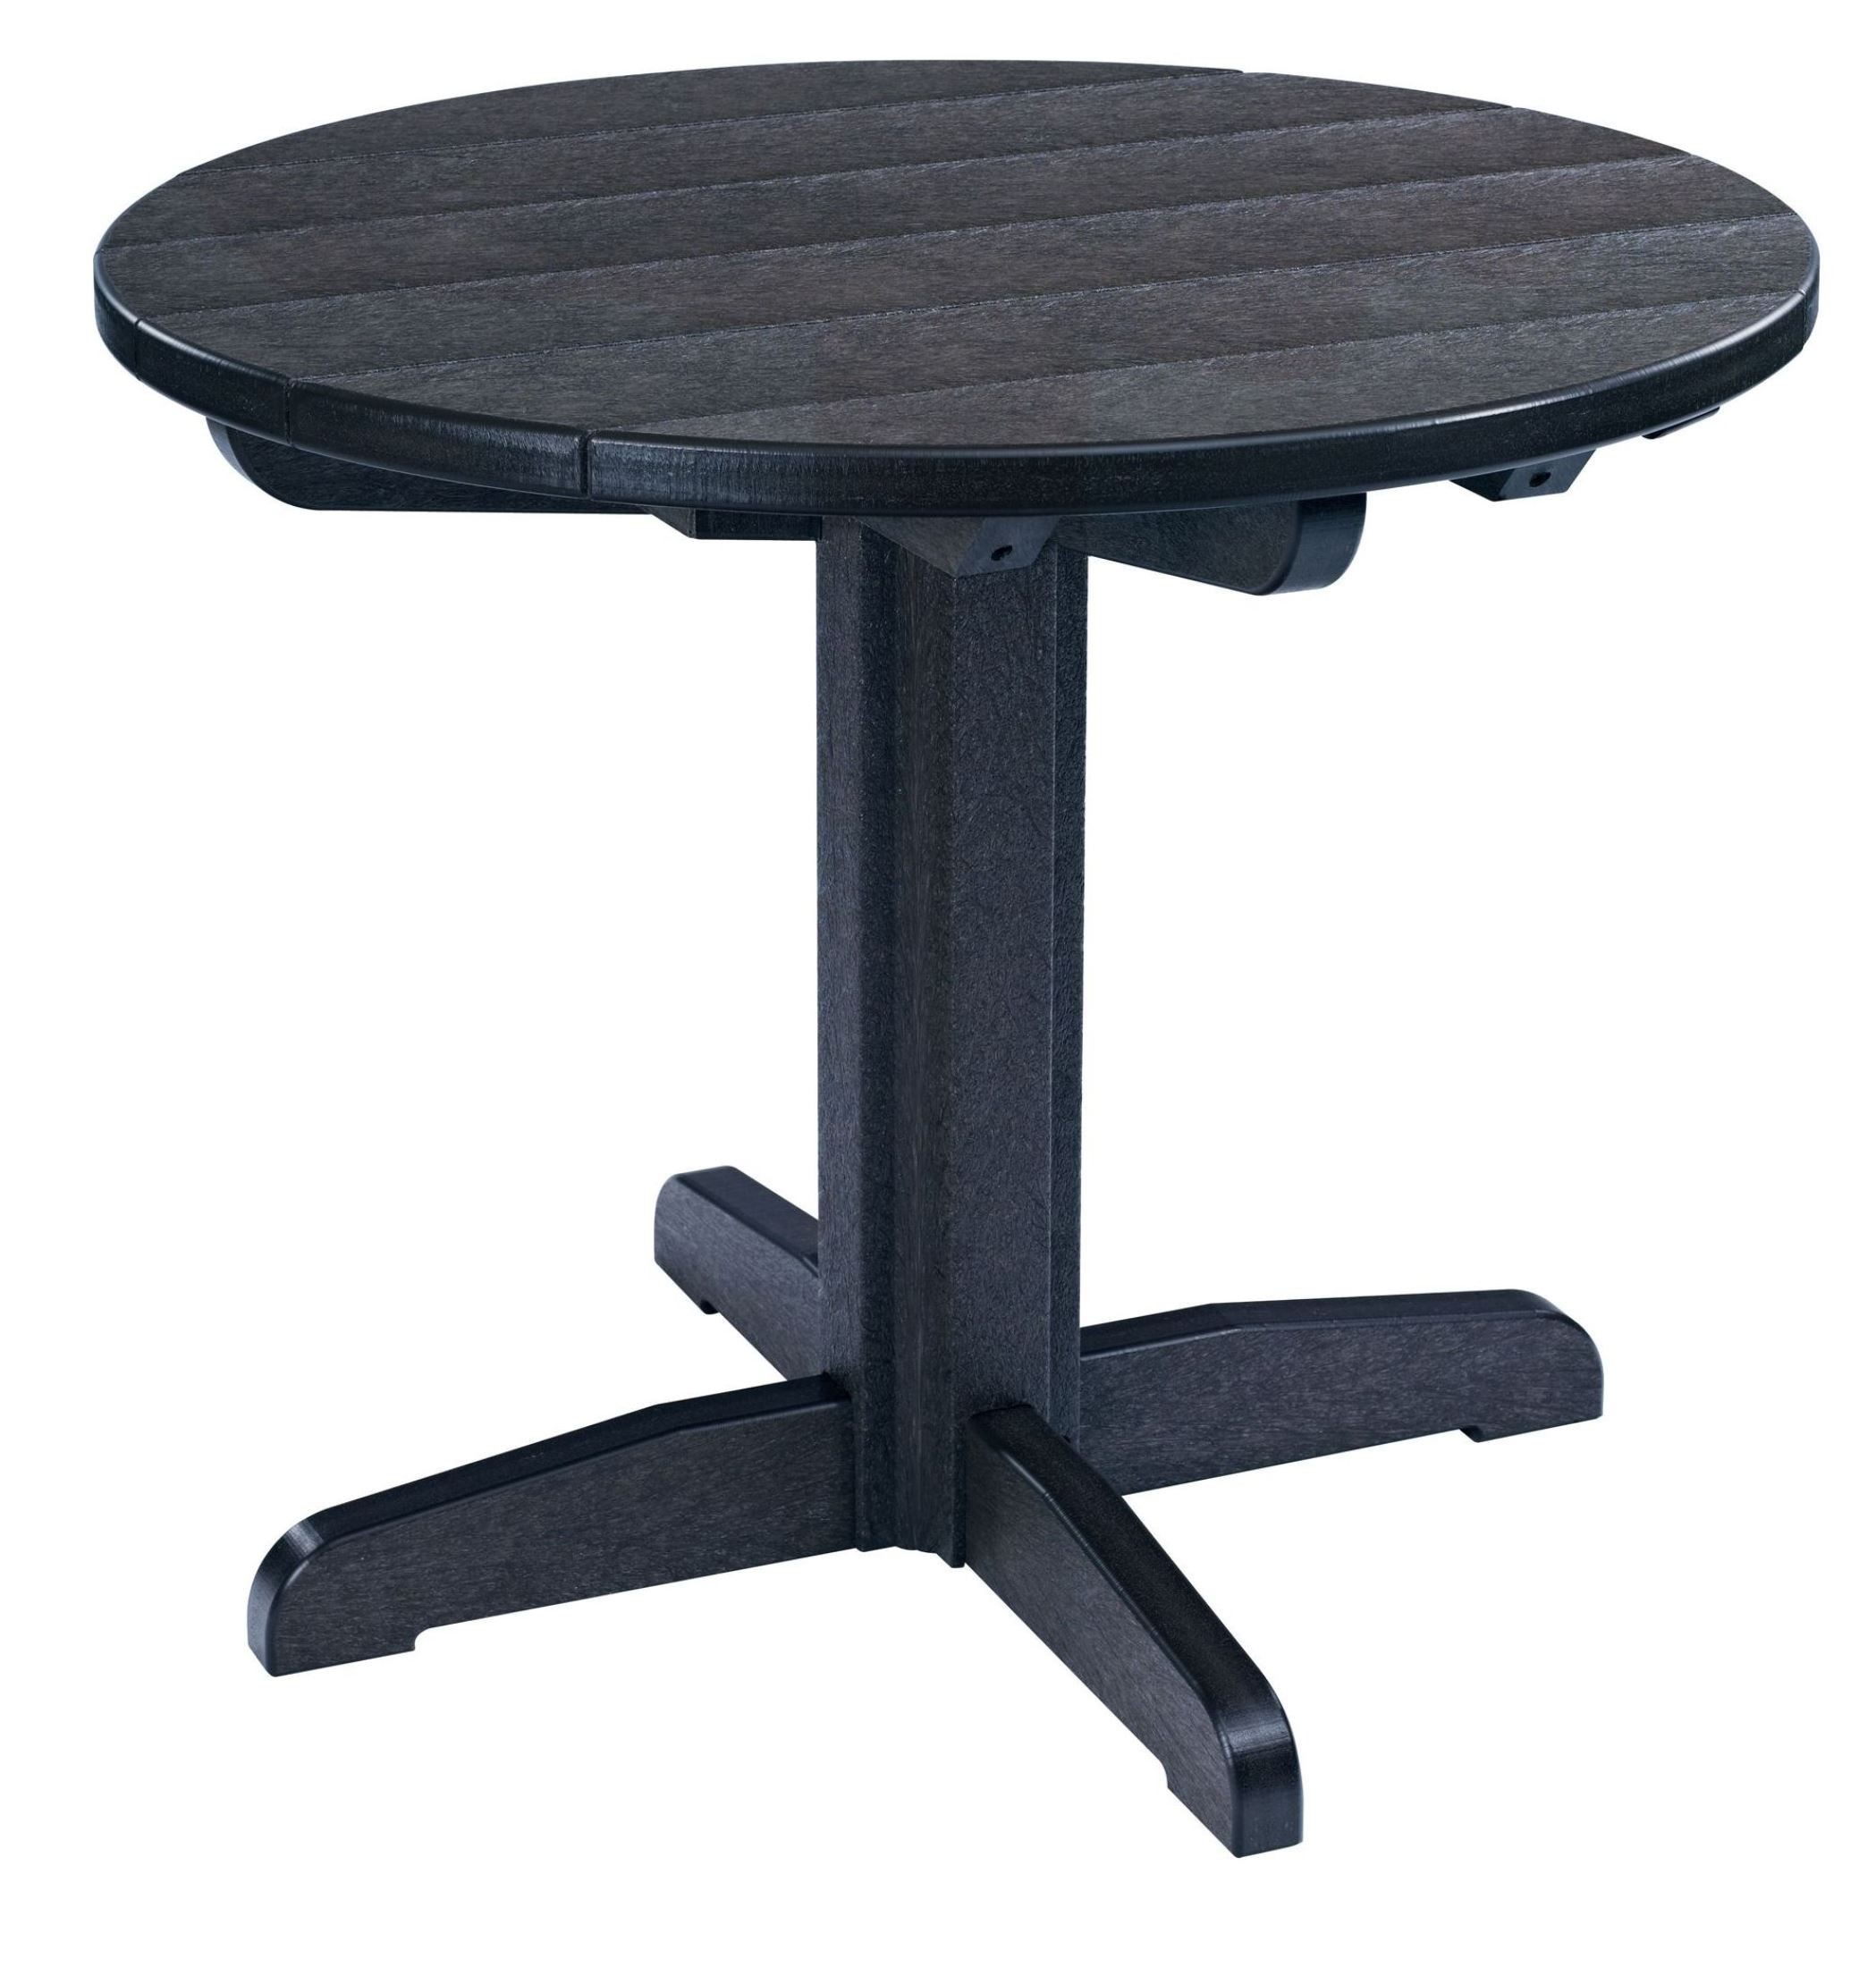 Generations Black 32 Round Pedestal Dining Table From CR Plastic